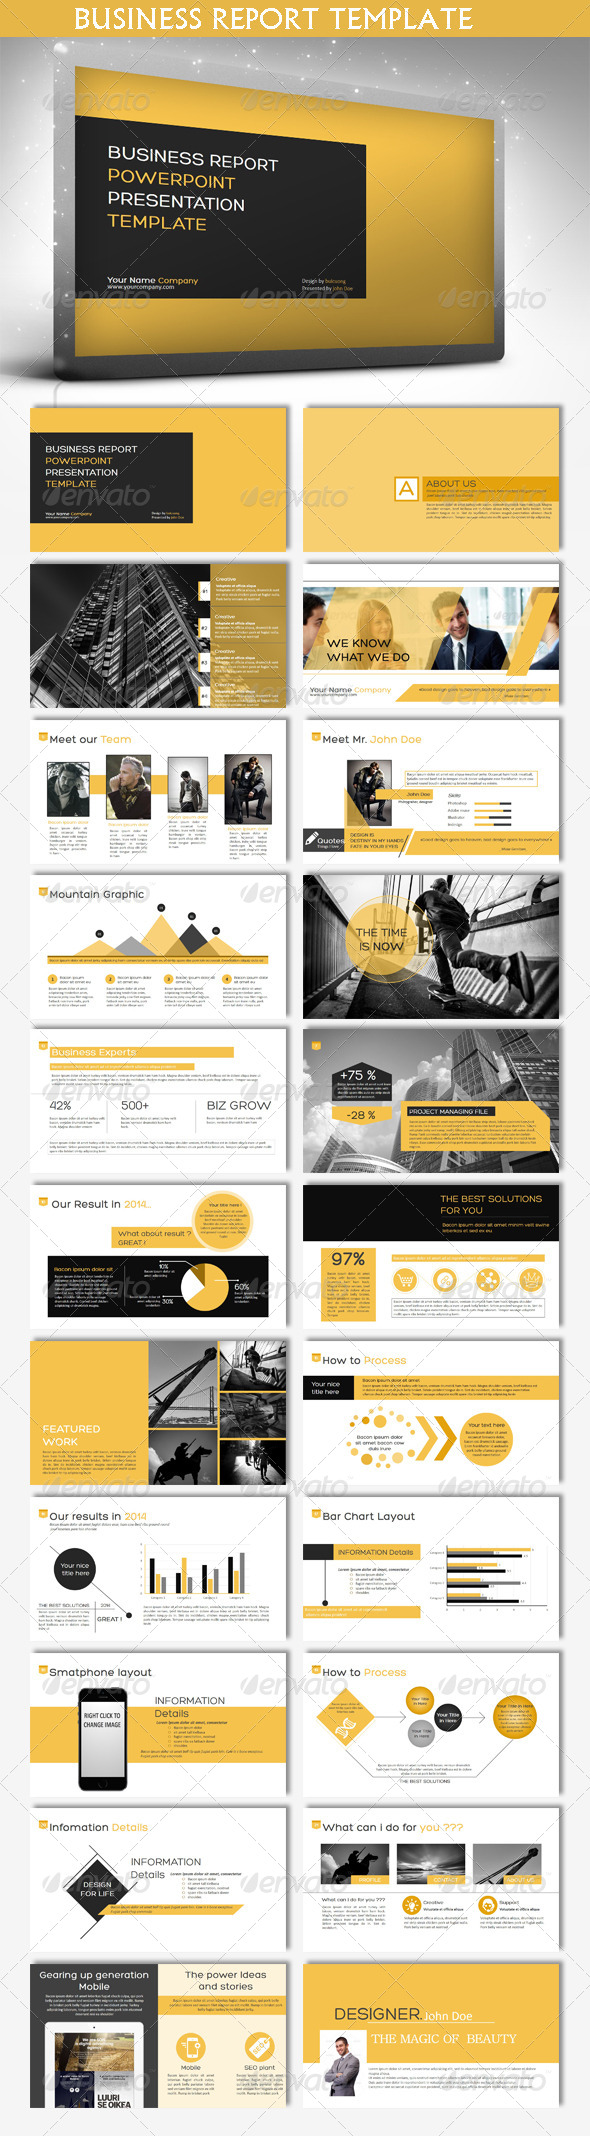 Business report powerpoint template powerpoint templates ppt business report powerpoint template powerpoint templates toneelgroepblik Gallery